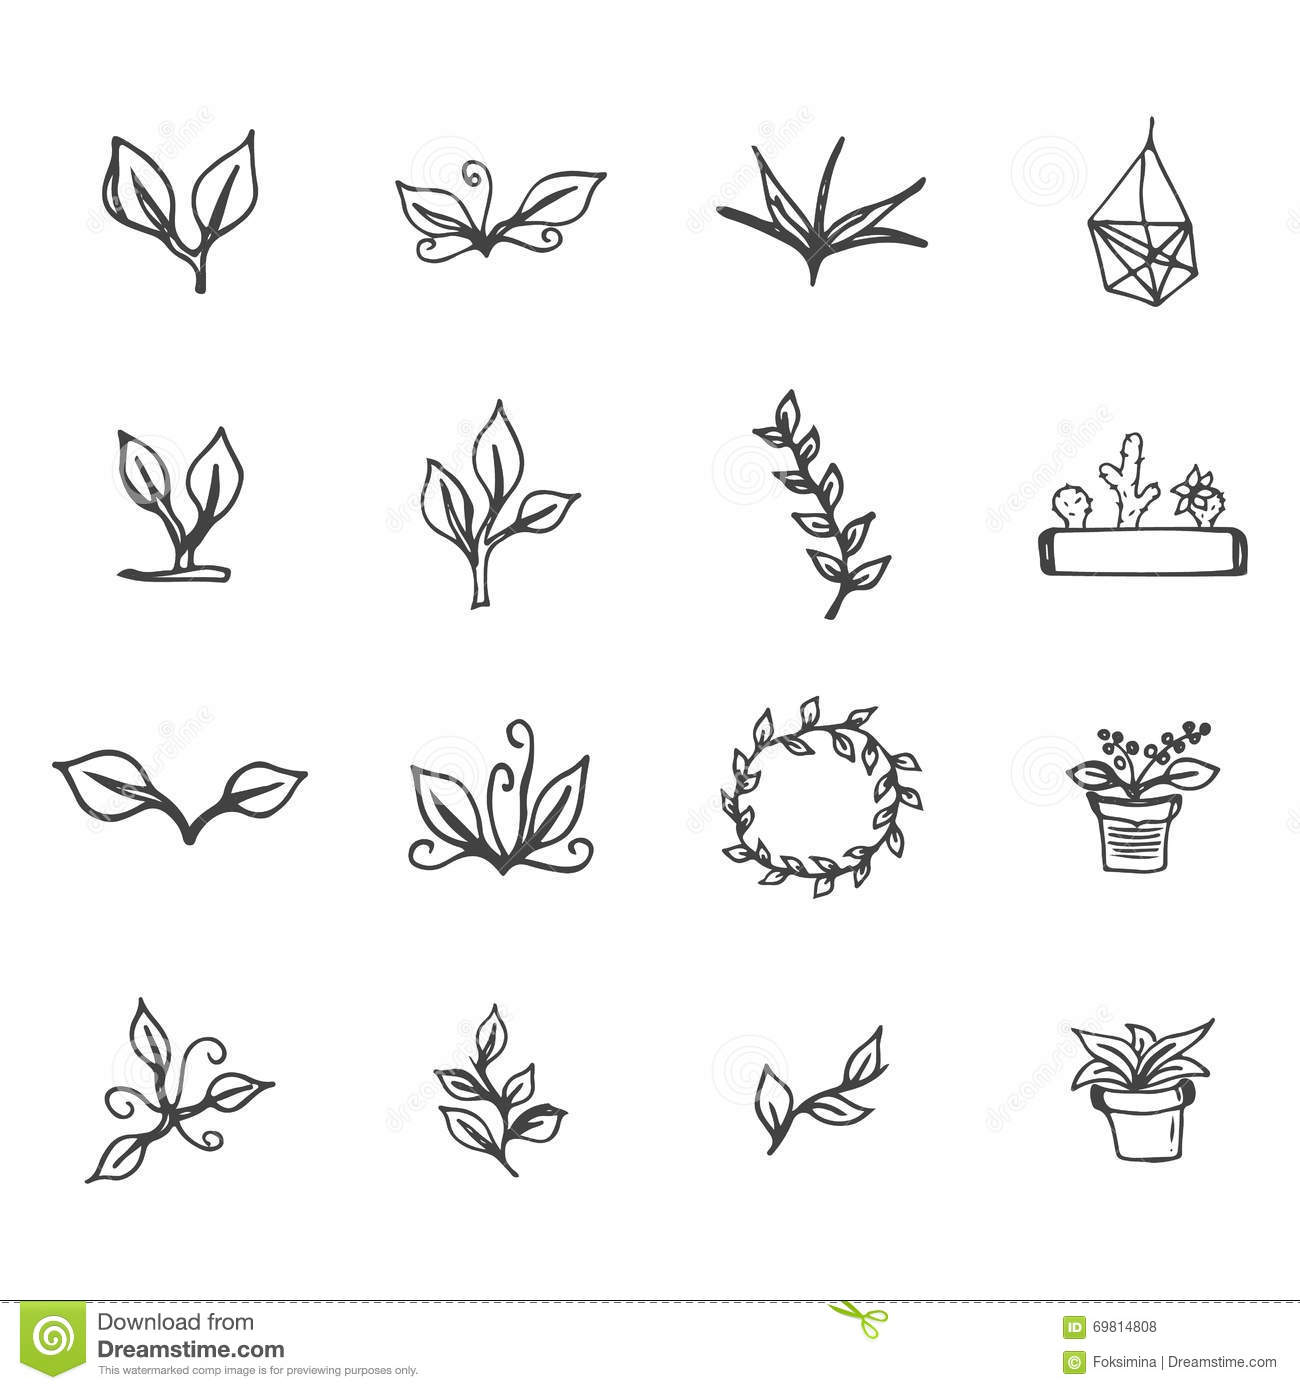 Black and white floral wreath stock vector image 65241515 - Black And White Floral Wreath Set Of Hand Drawn Flowers Leaves Cactus And Flower Pots Spring Ink Floral